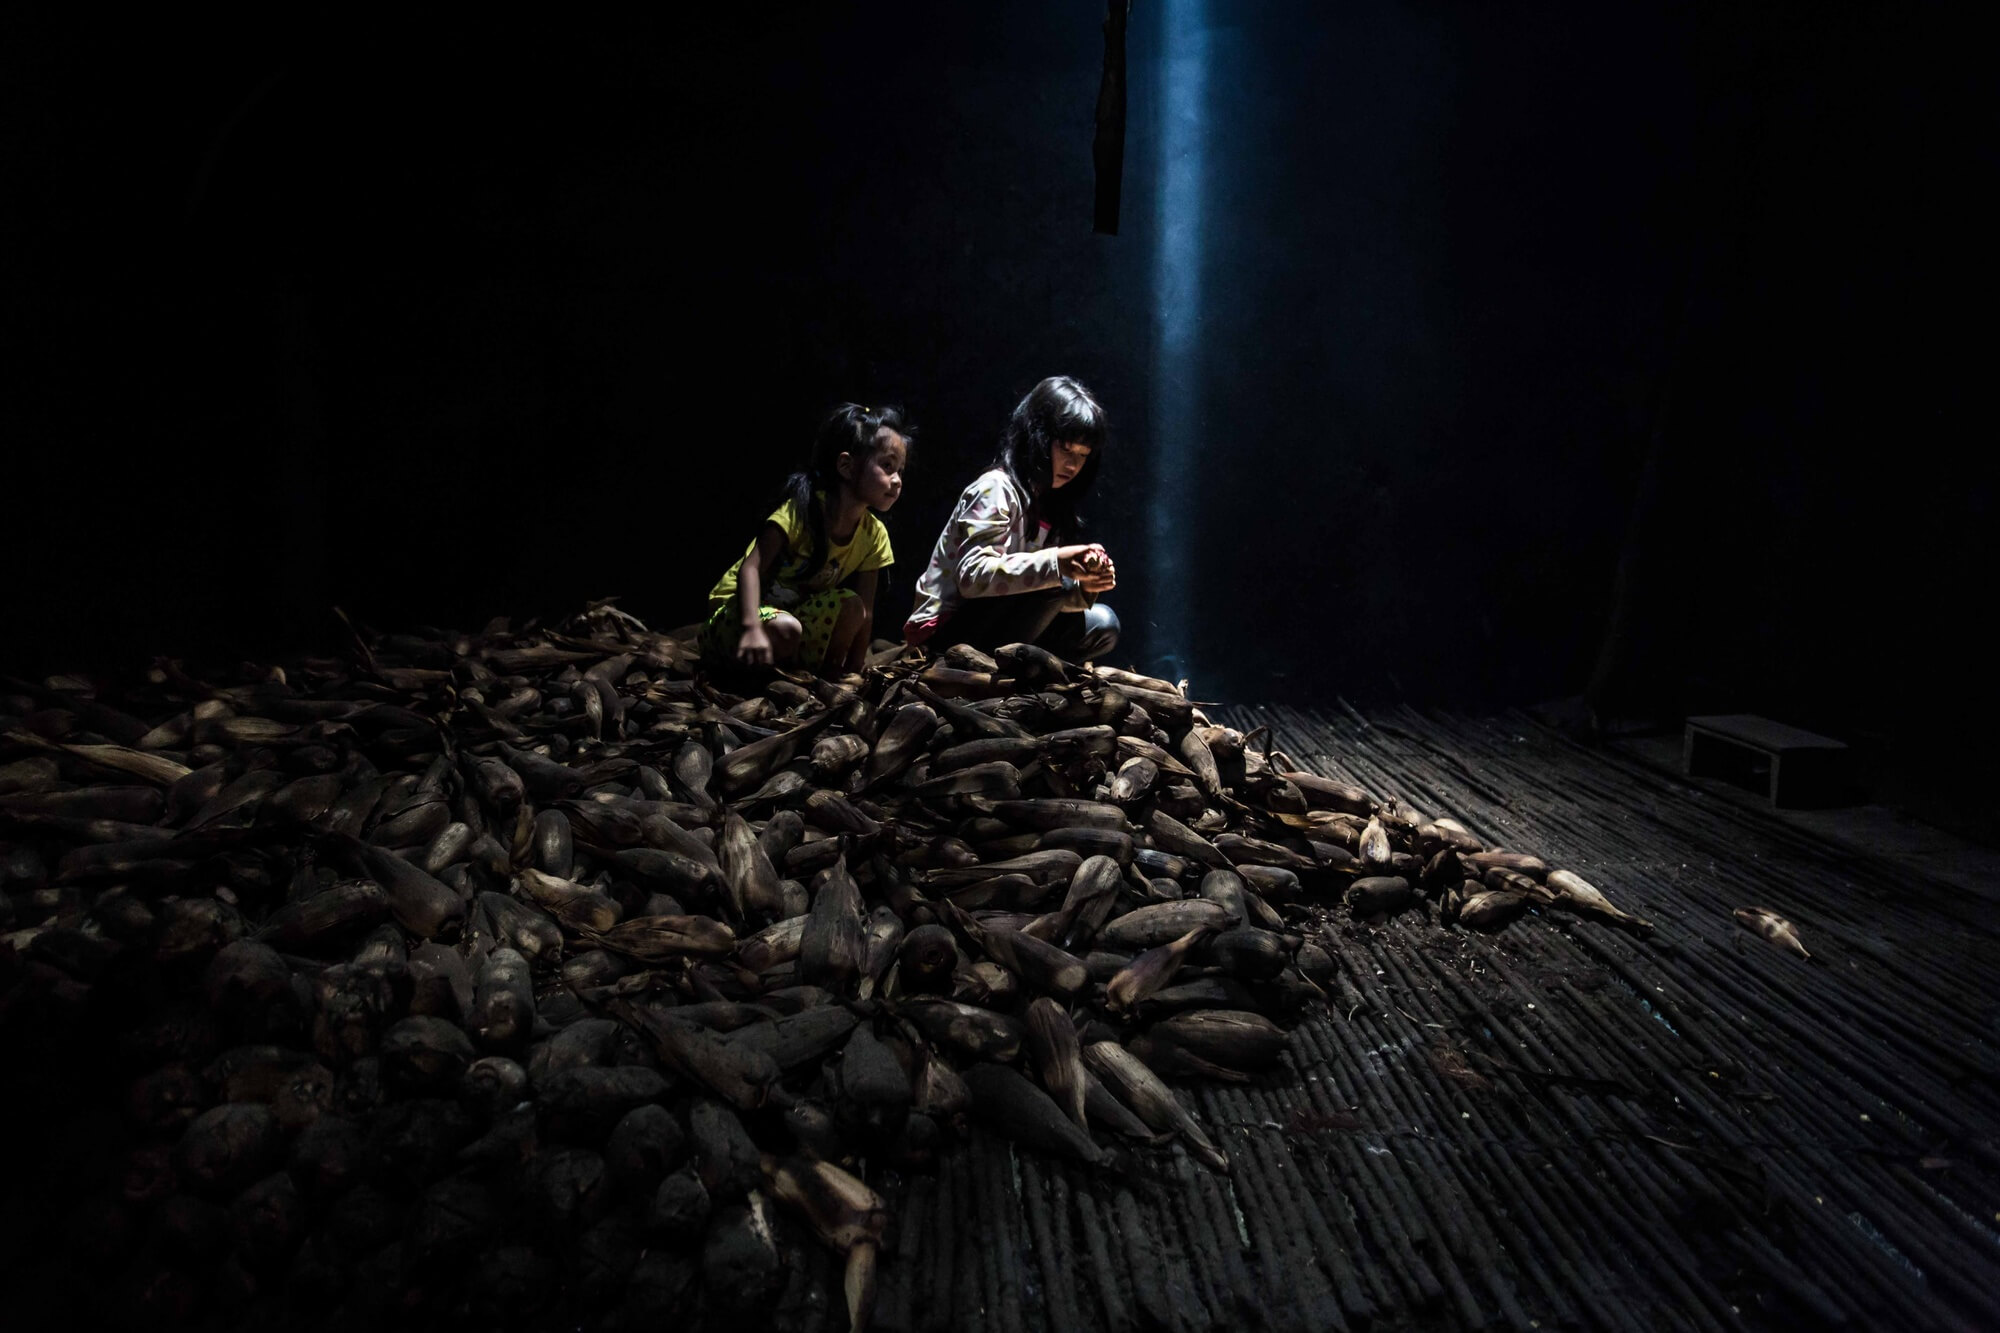 Two Vietnamese minority childs atop a mount of unprocessed corns in dim lit granary